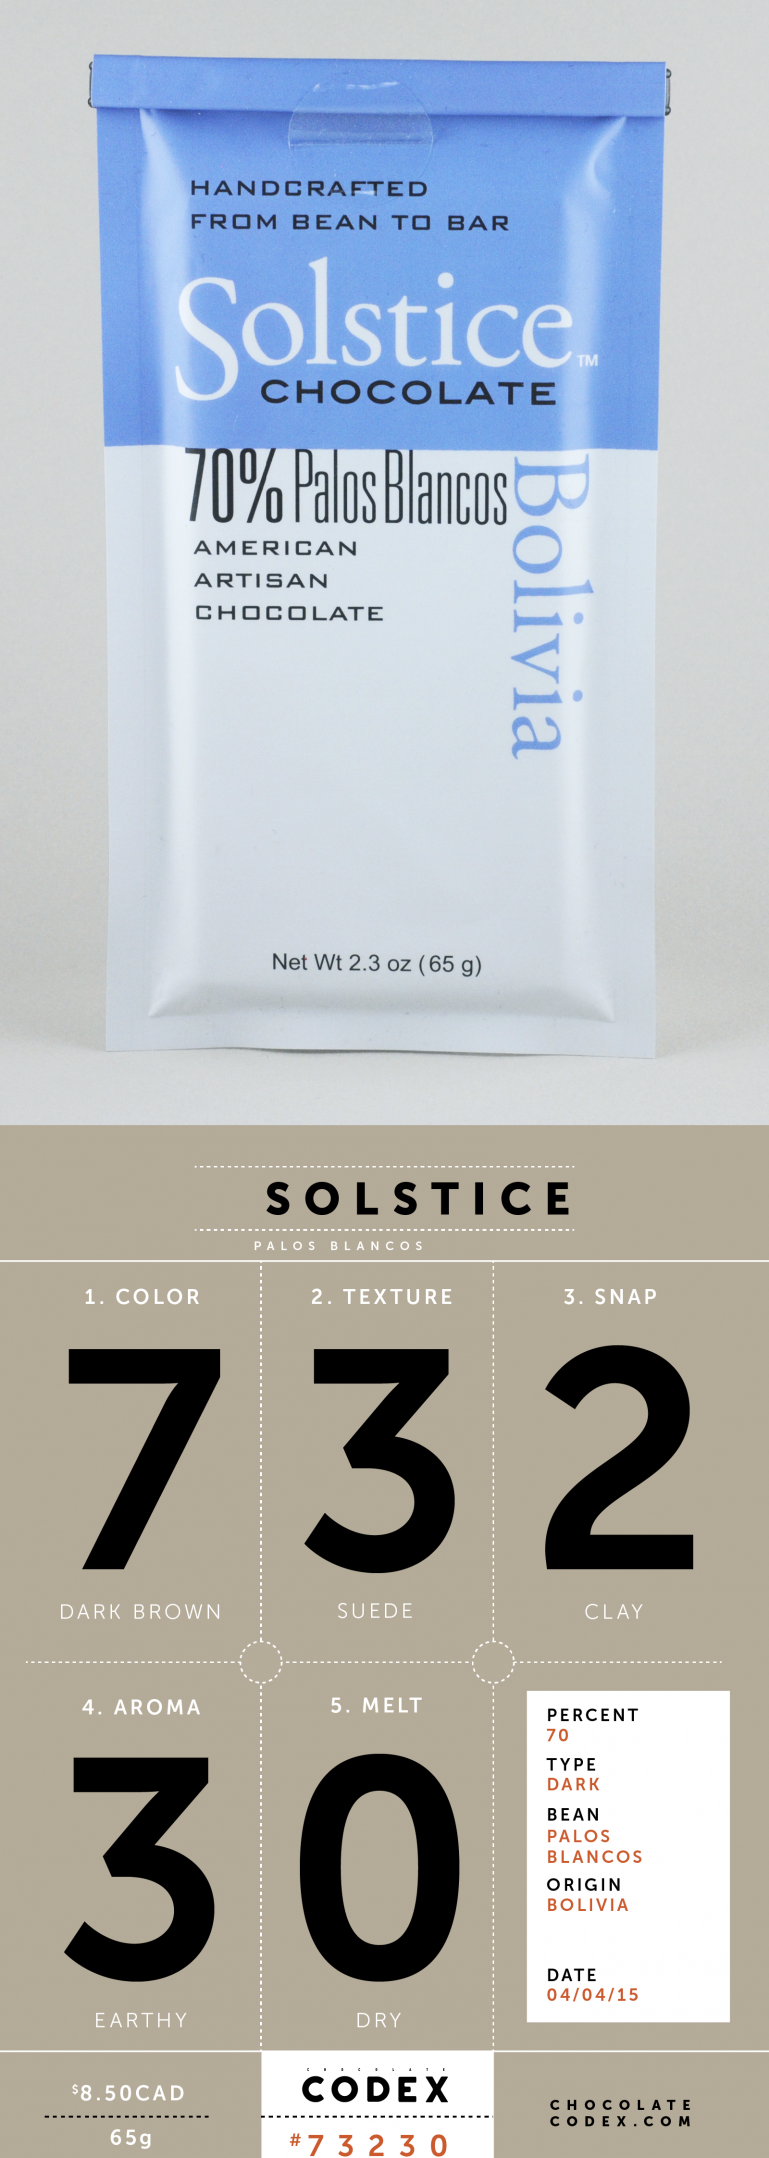 Chocolate-Codex-Reviews-Solstice-Bolivia-70